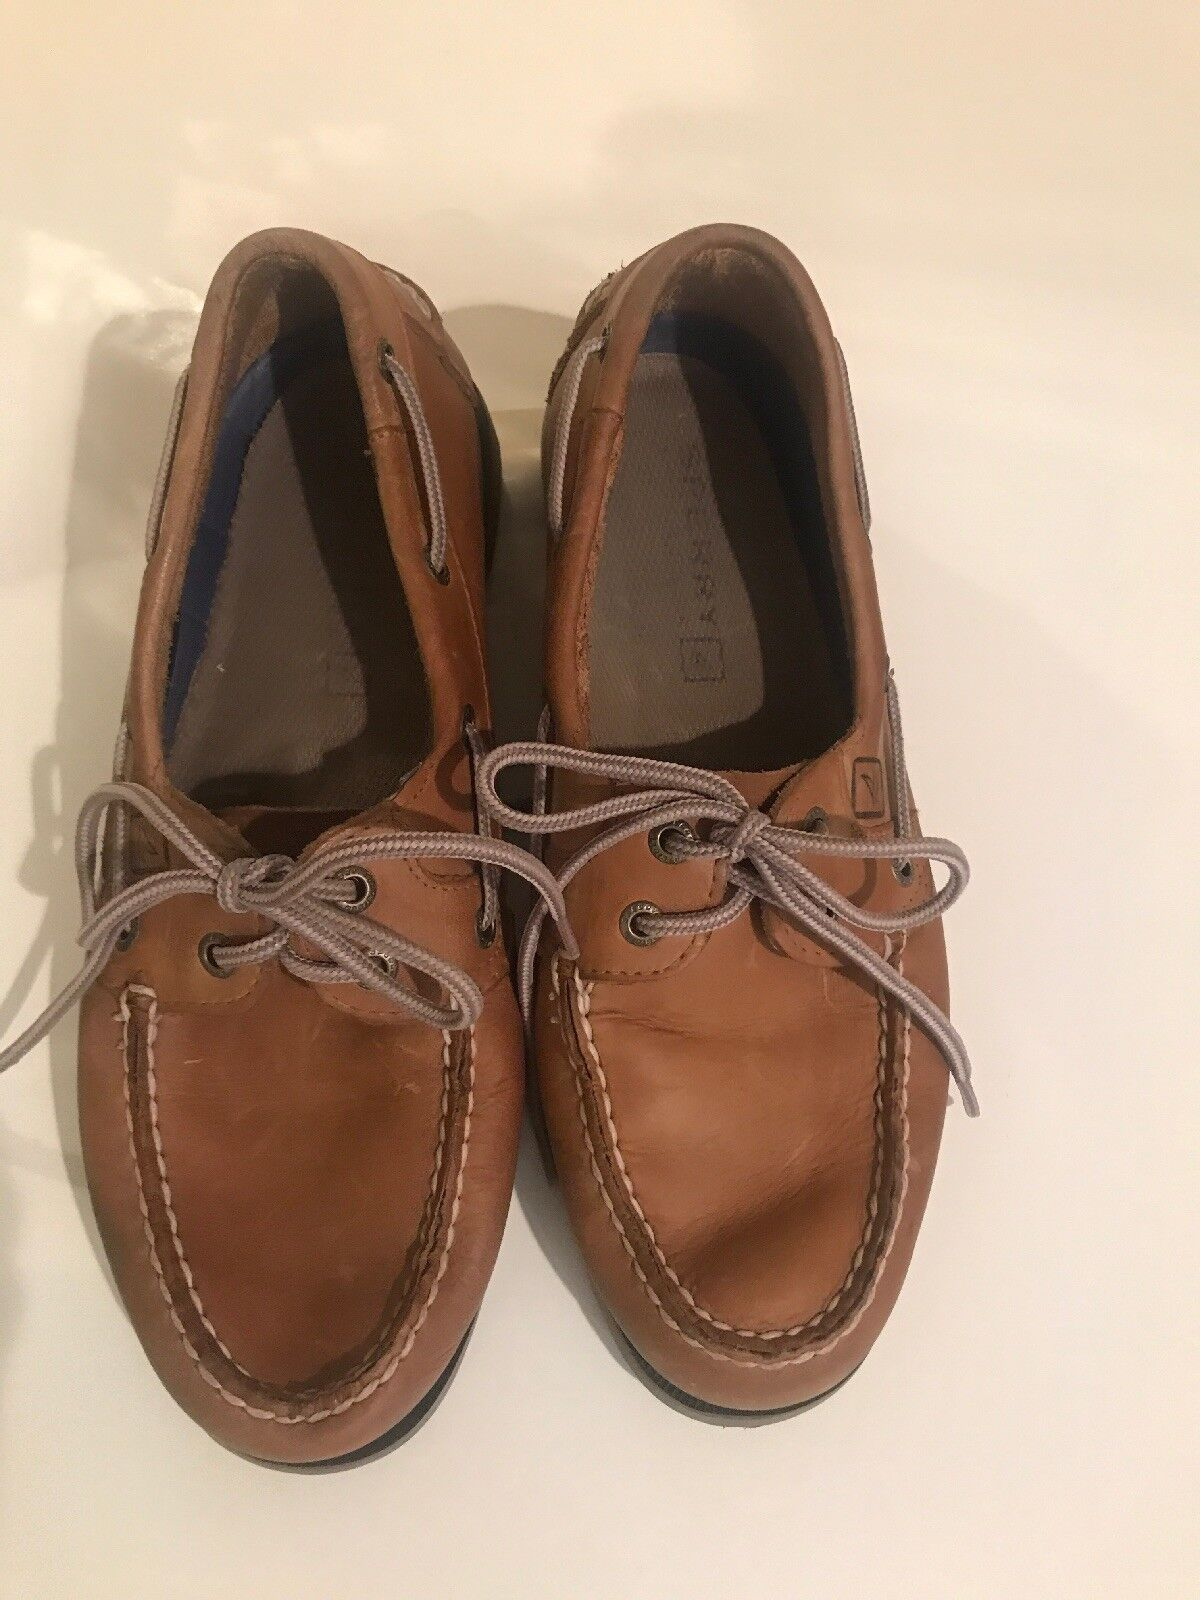 Men's Sperry Original Two Eye Leather Boat shoes Tan Size 8